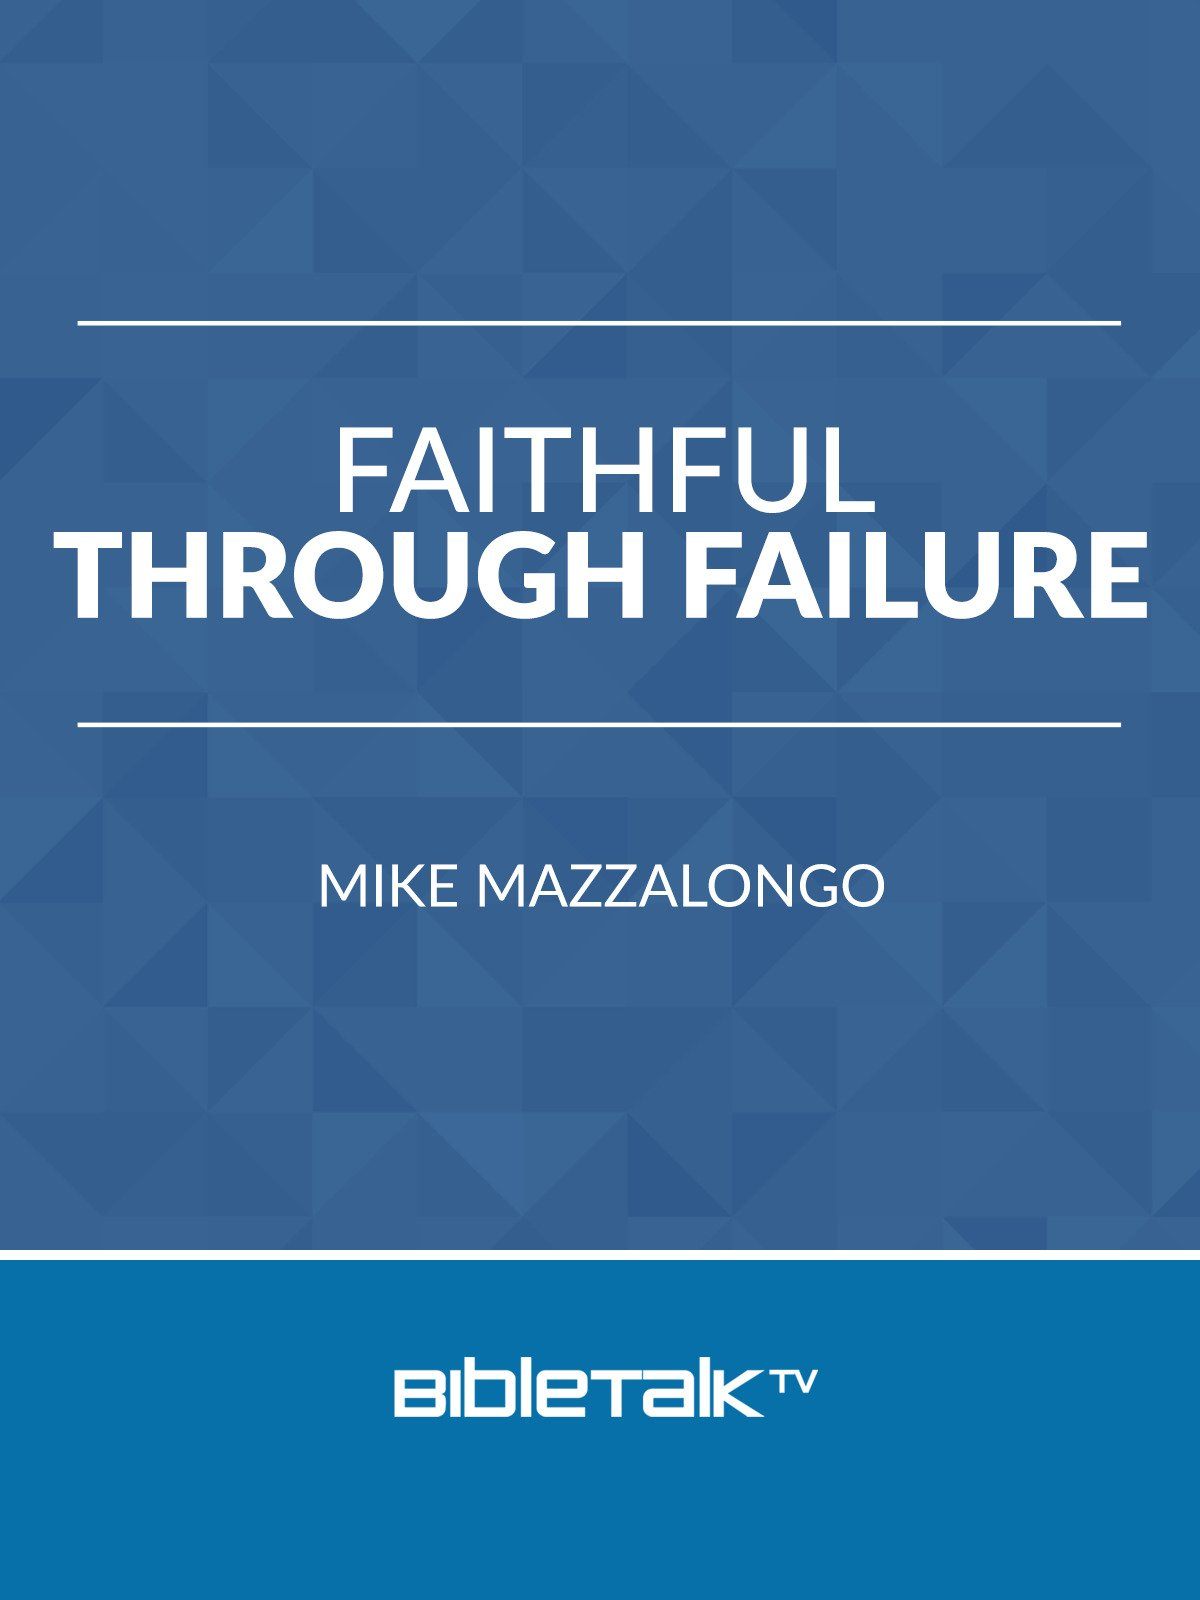 Faithful Through Failure